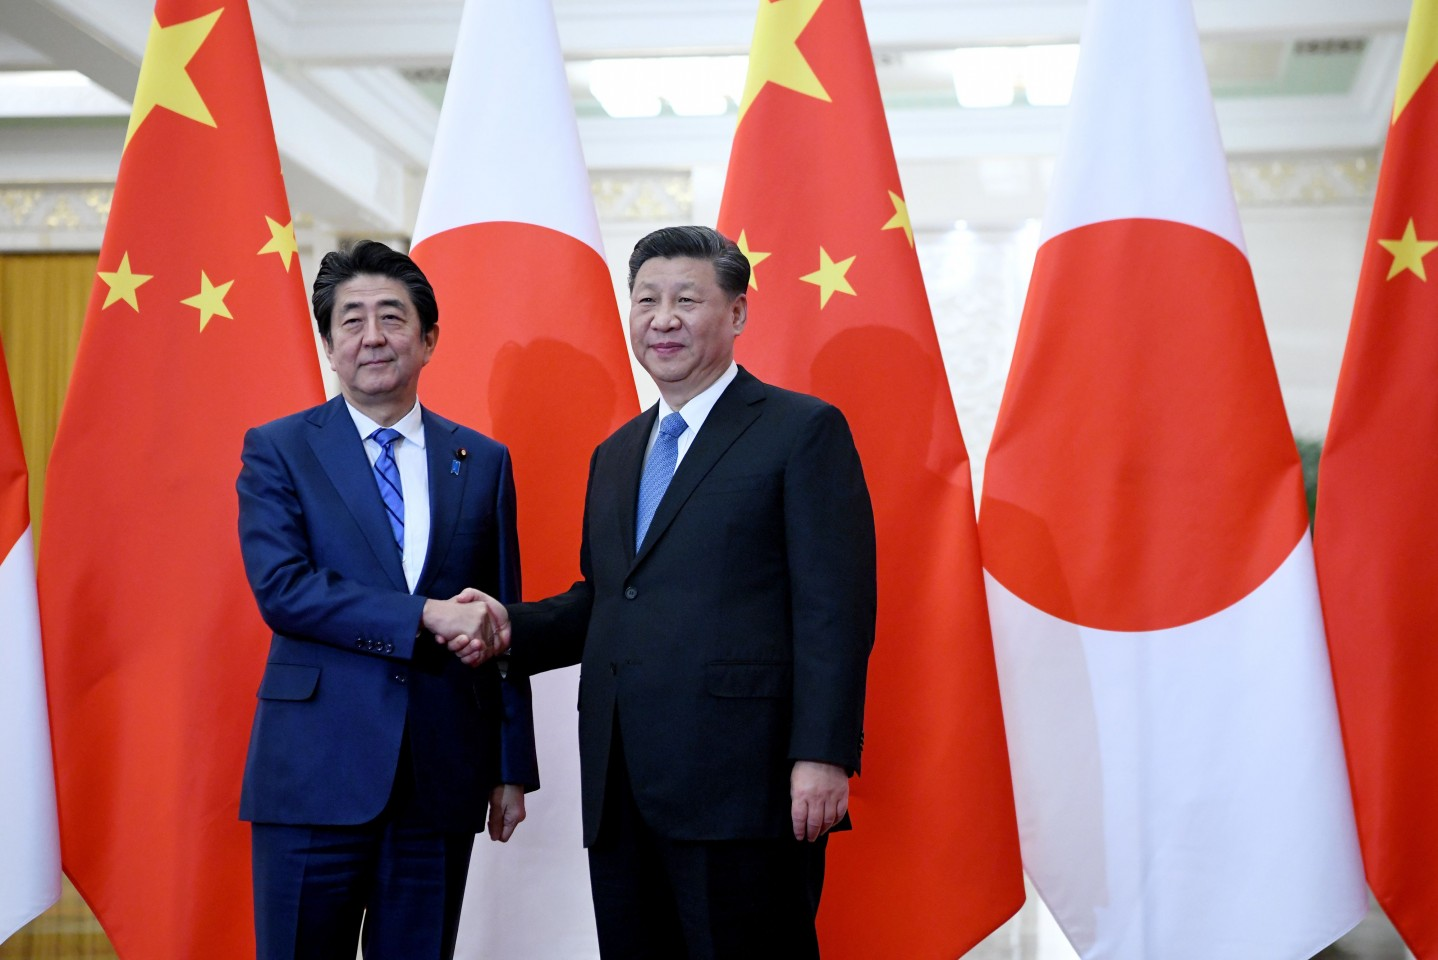 Japan's Prime Minister Shinzo Abe (left) shakes hand with China's President Xi Jinping at the Great Hall of the People in Beijing on December 23, 2019. (Noel Celis/POOL/AFP)